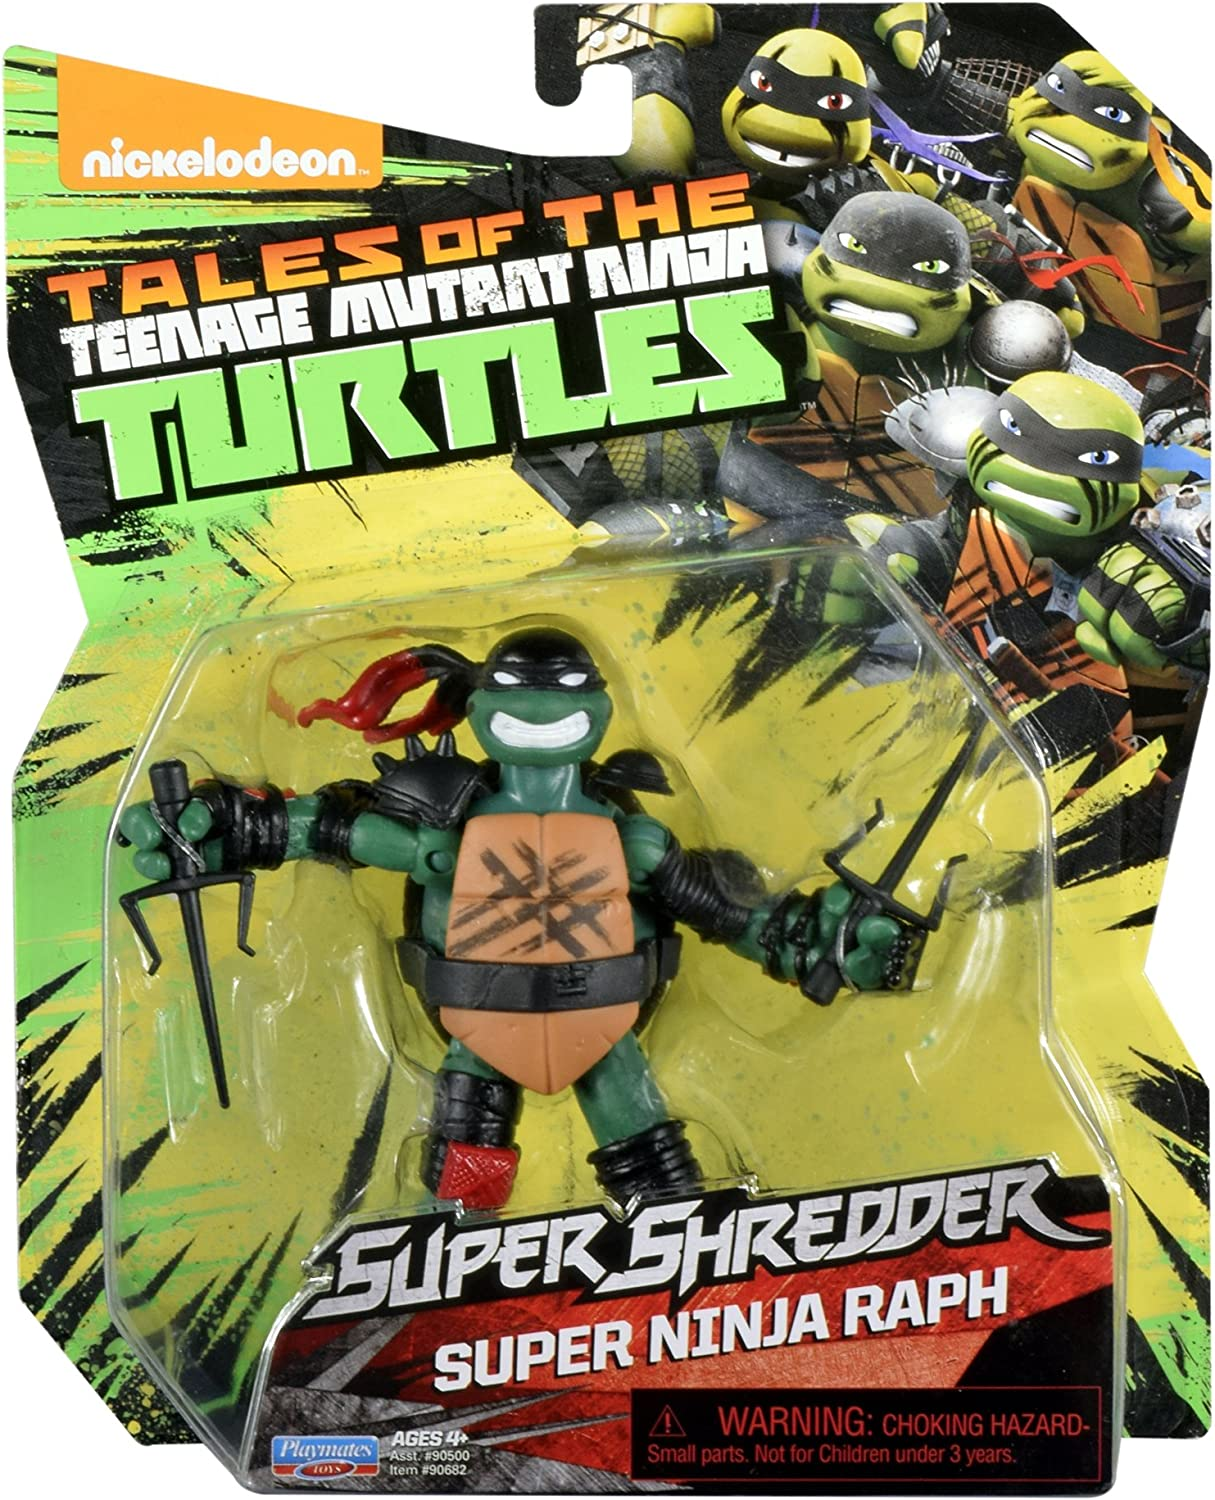 Amazon.com: Teenage Mutant Ninja Turtles Super Ninja Raphael ...